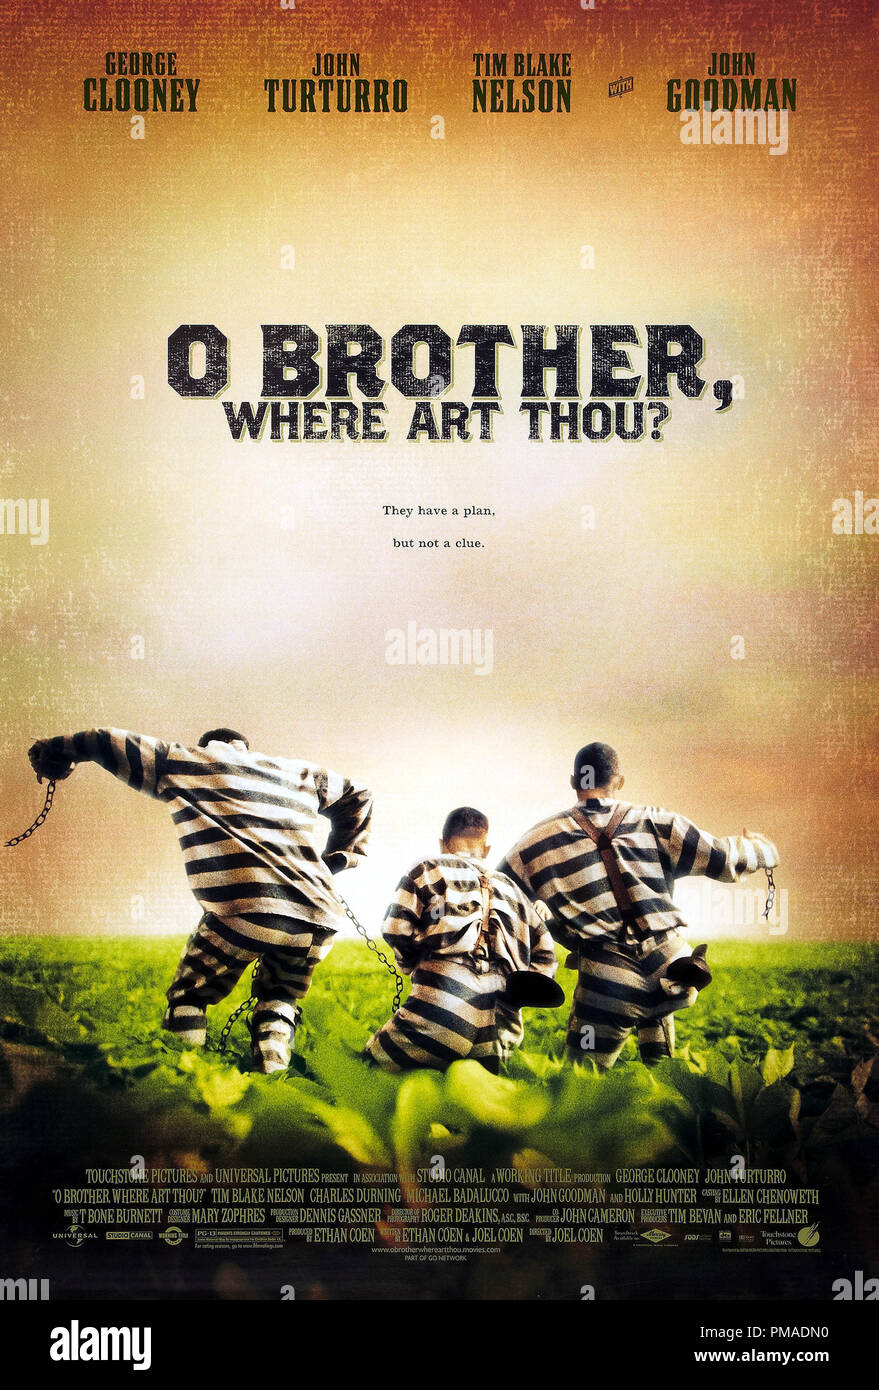 'O Brother, Where Art Thou?' - US Poster 2000 Universal Pictures  George Clooney, John Turturro, Tim Blake Nelson  File Reference # 32509_274THA - Stock Image